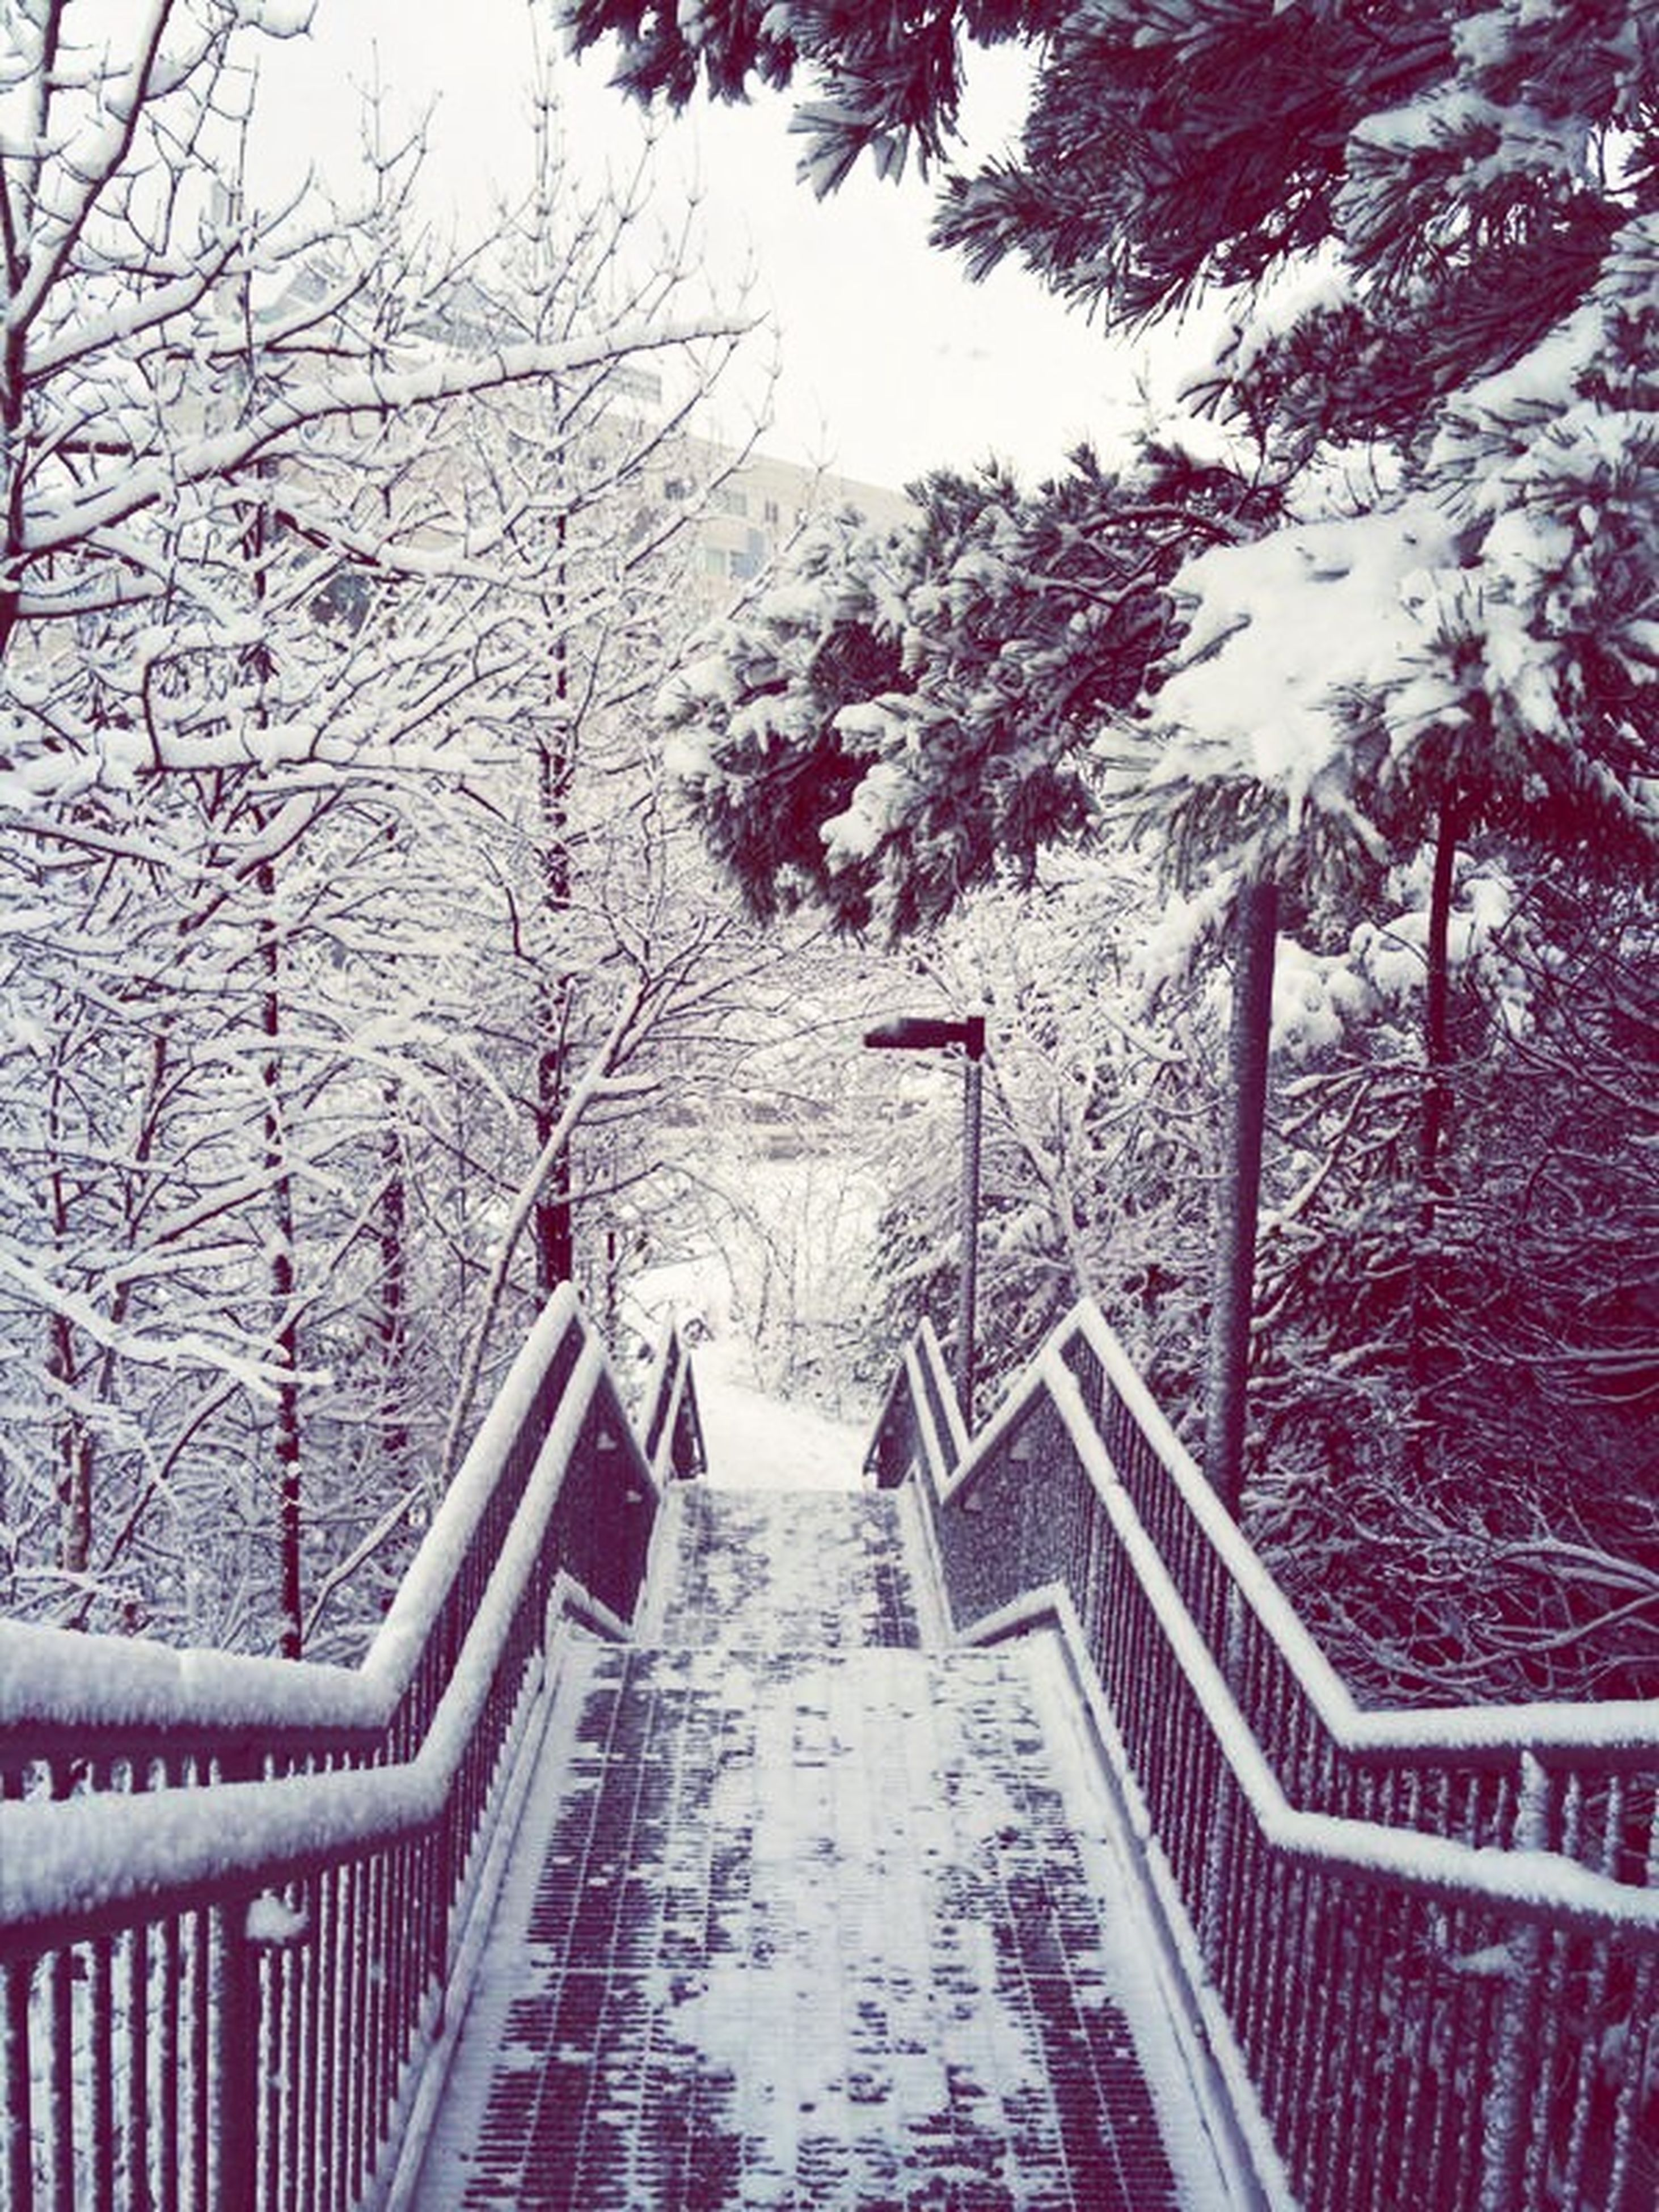 tree, branch, built structure, architecture, railing, bare tree, season, building exterior, the way forward, growth, nature, park - man made space, winter, snow, day, outdoors, flower, no people, steps, tree trunk